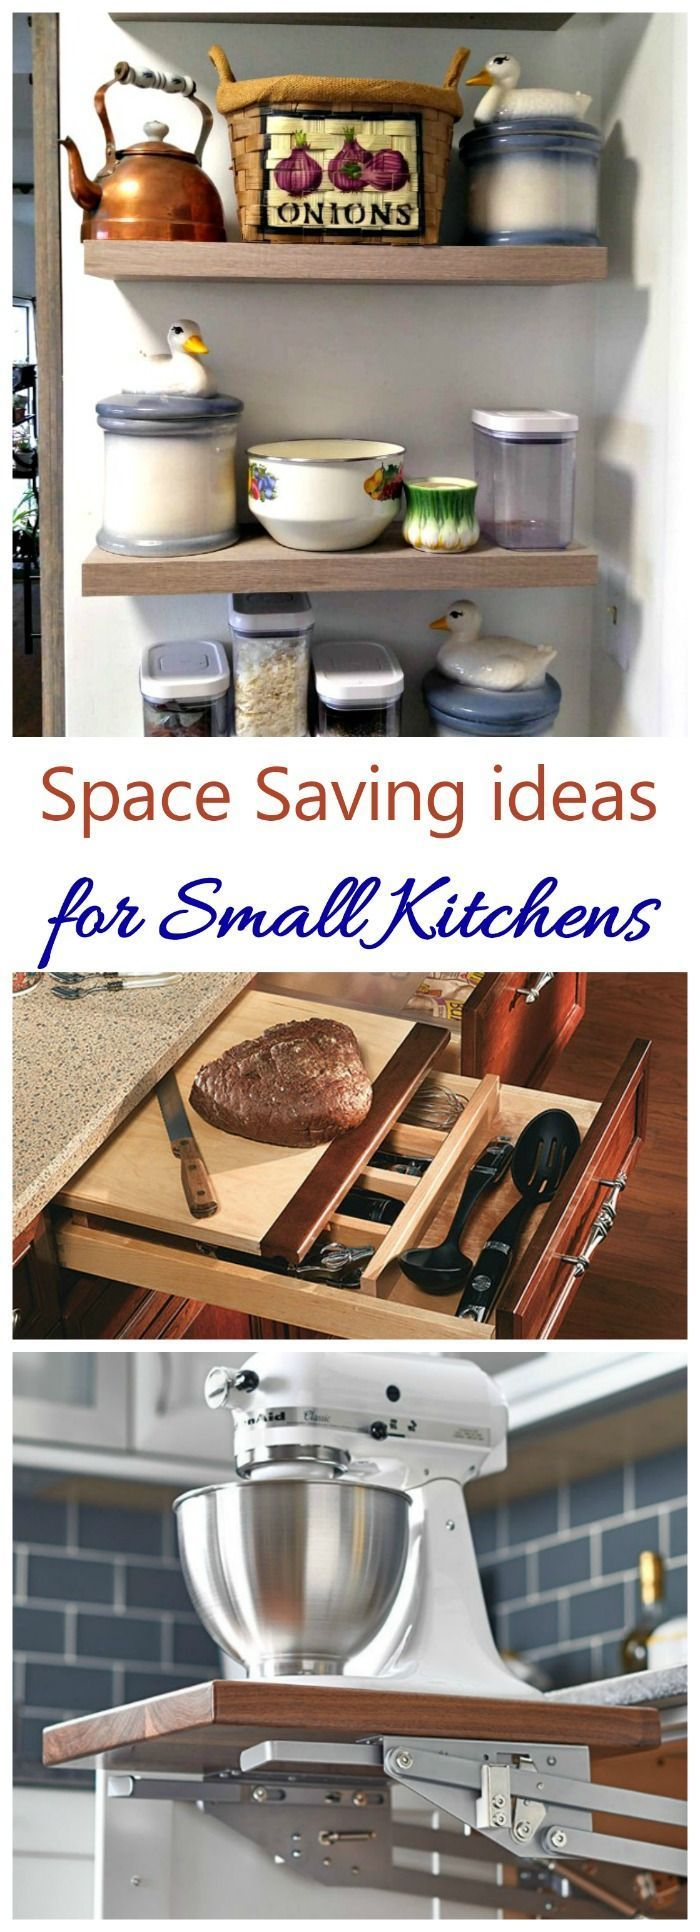 space saving kitchen ideas to make life easier in small on creative space saving cabinets and storage ideas id=32879